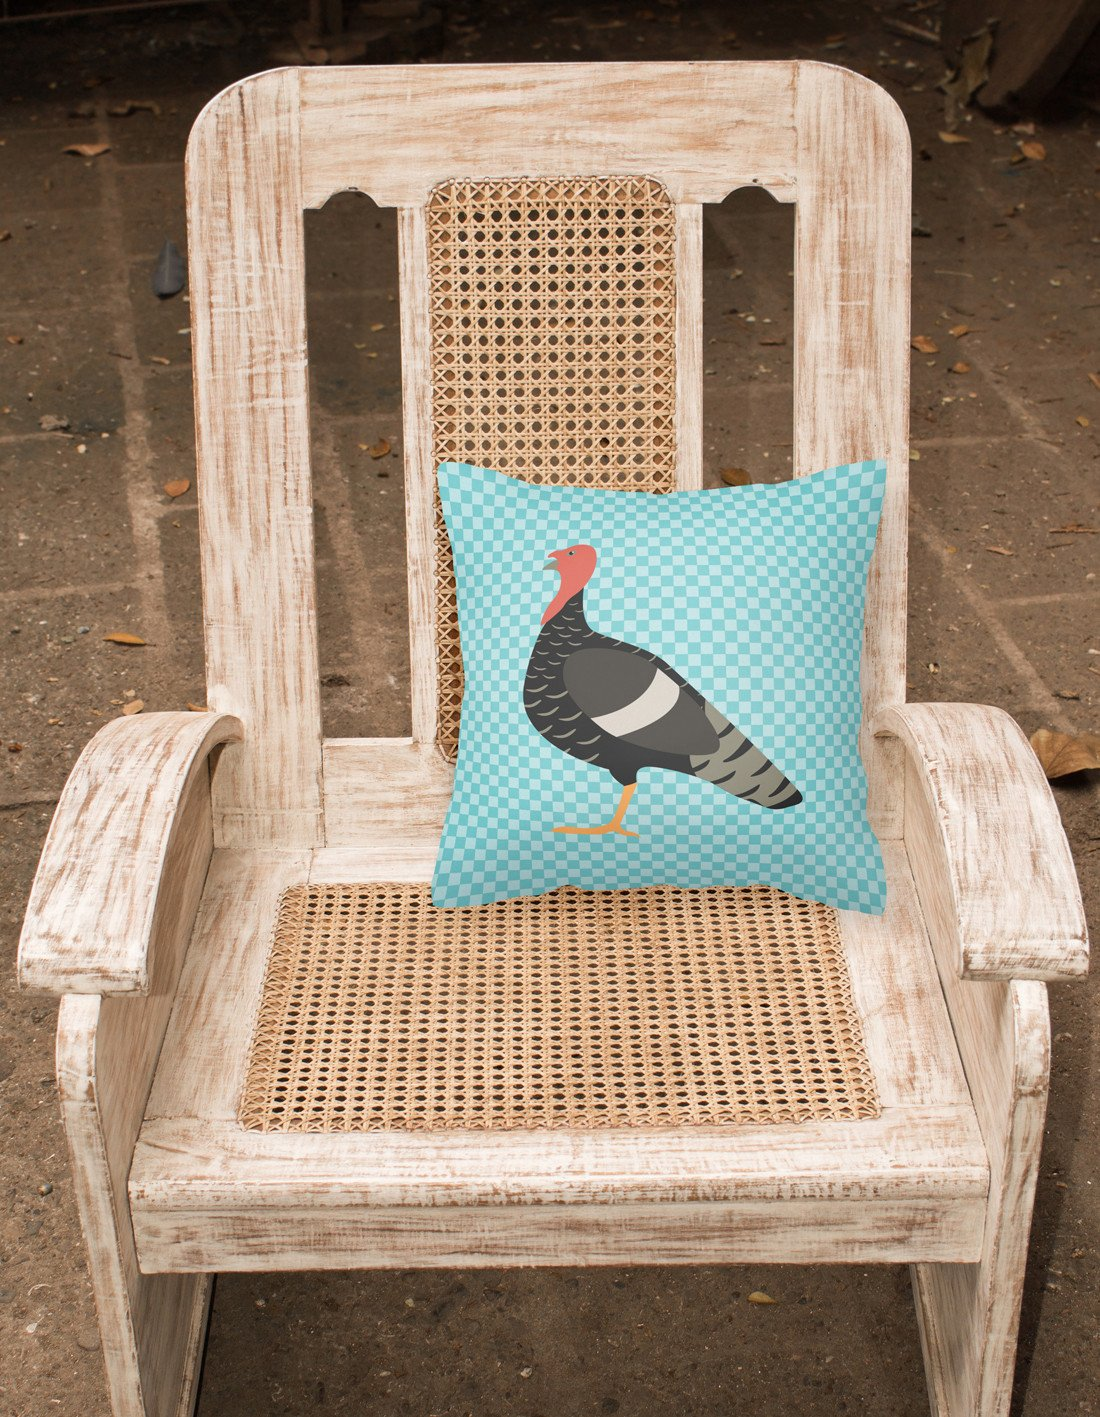 Marragansett Turkey Blue Check Fabric Decorative Pillow BB8161PW1818 by Caroline's Treasures